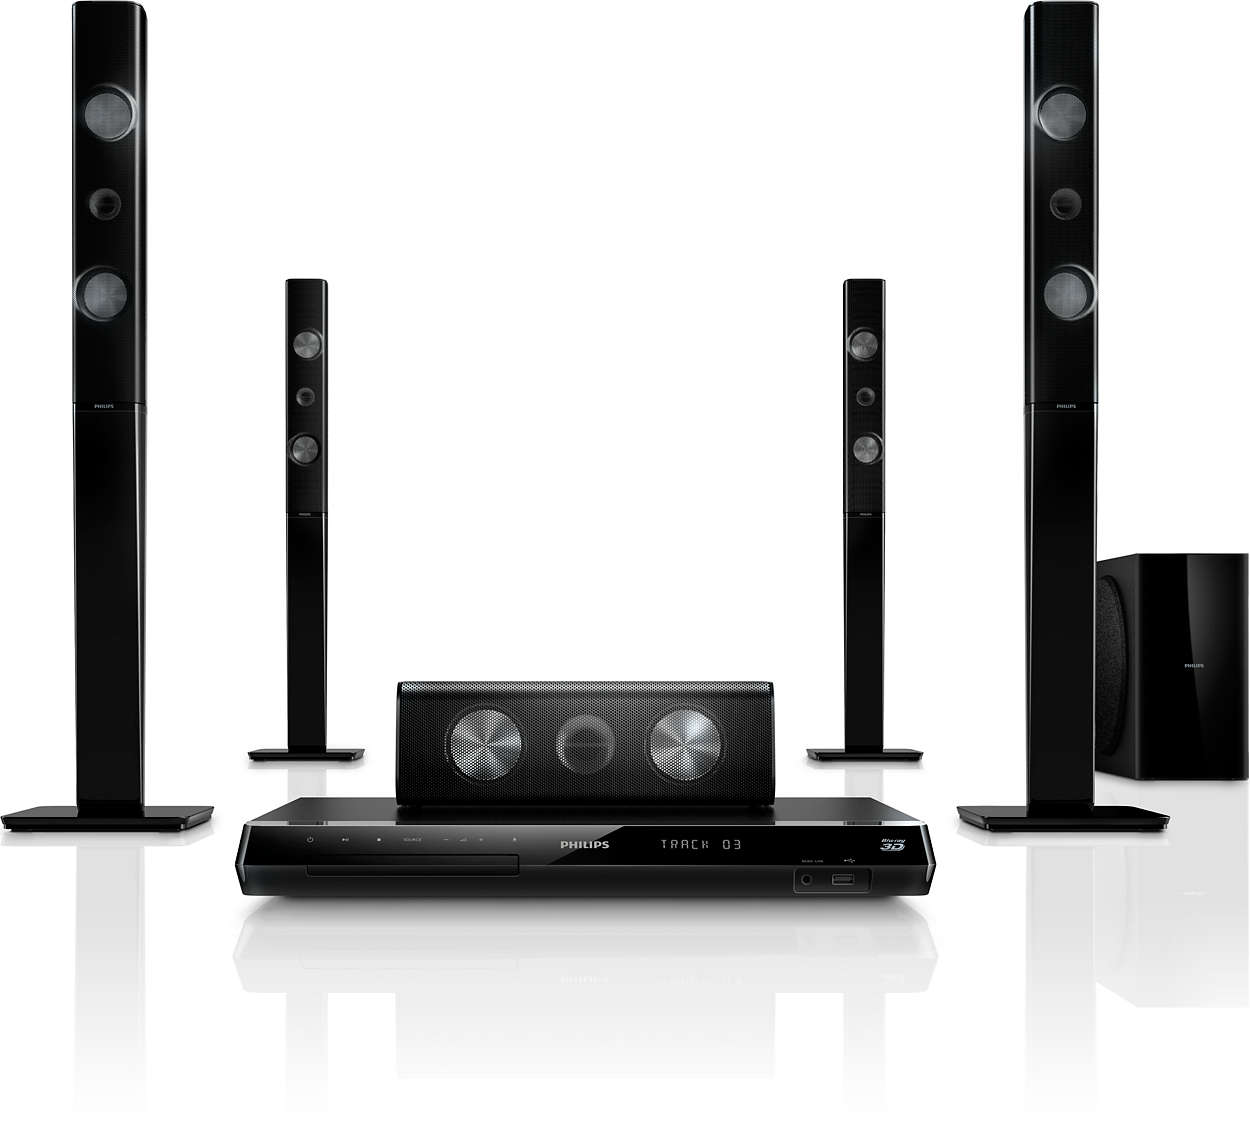 5 1 home theater htb7590kd 98 philips. Black Bedroom Furniture Sets. Home Design Ideas